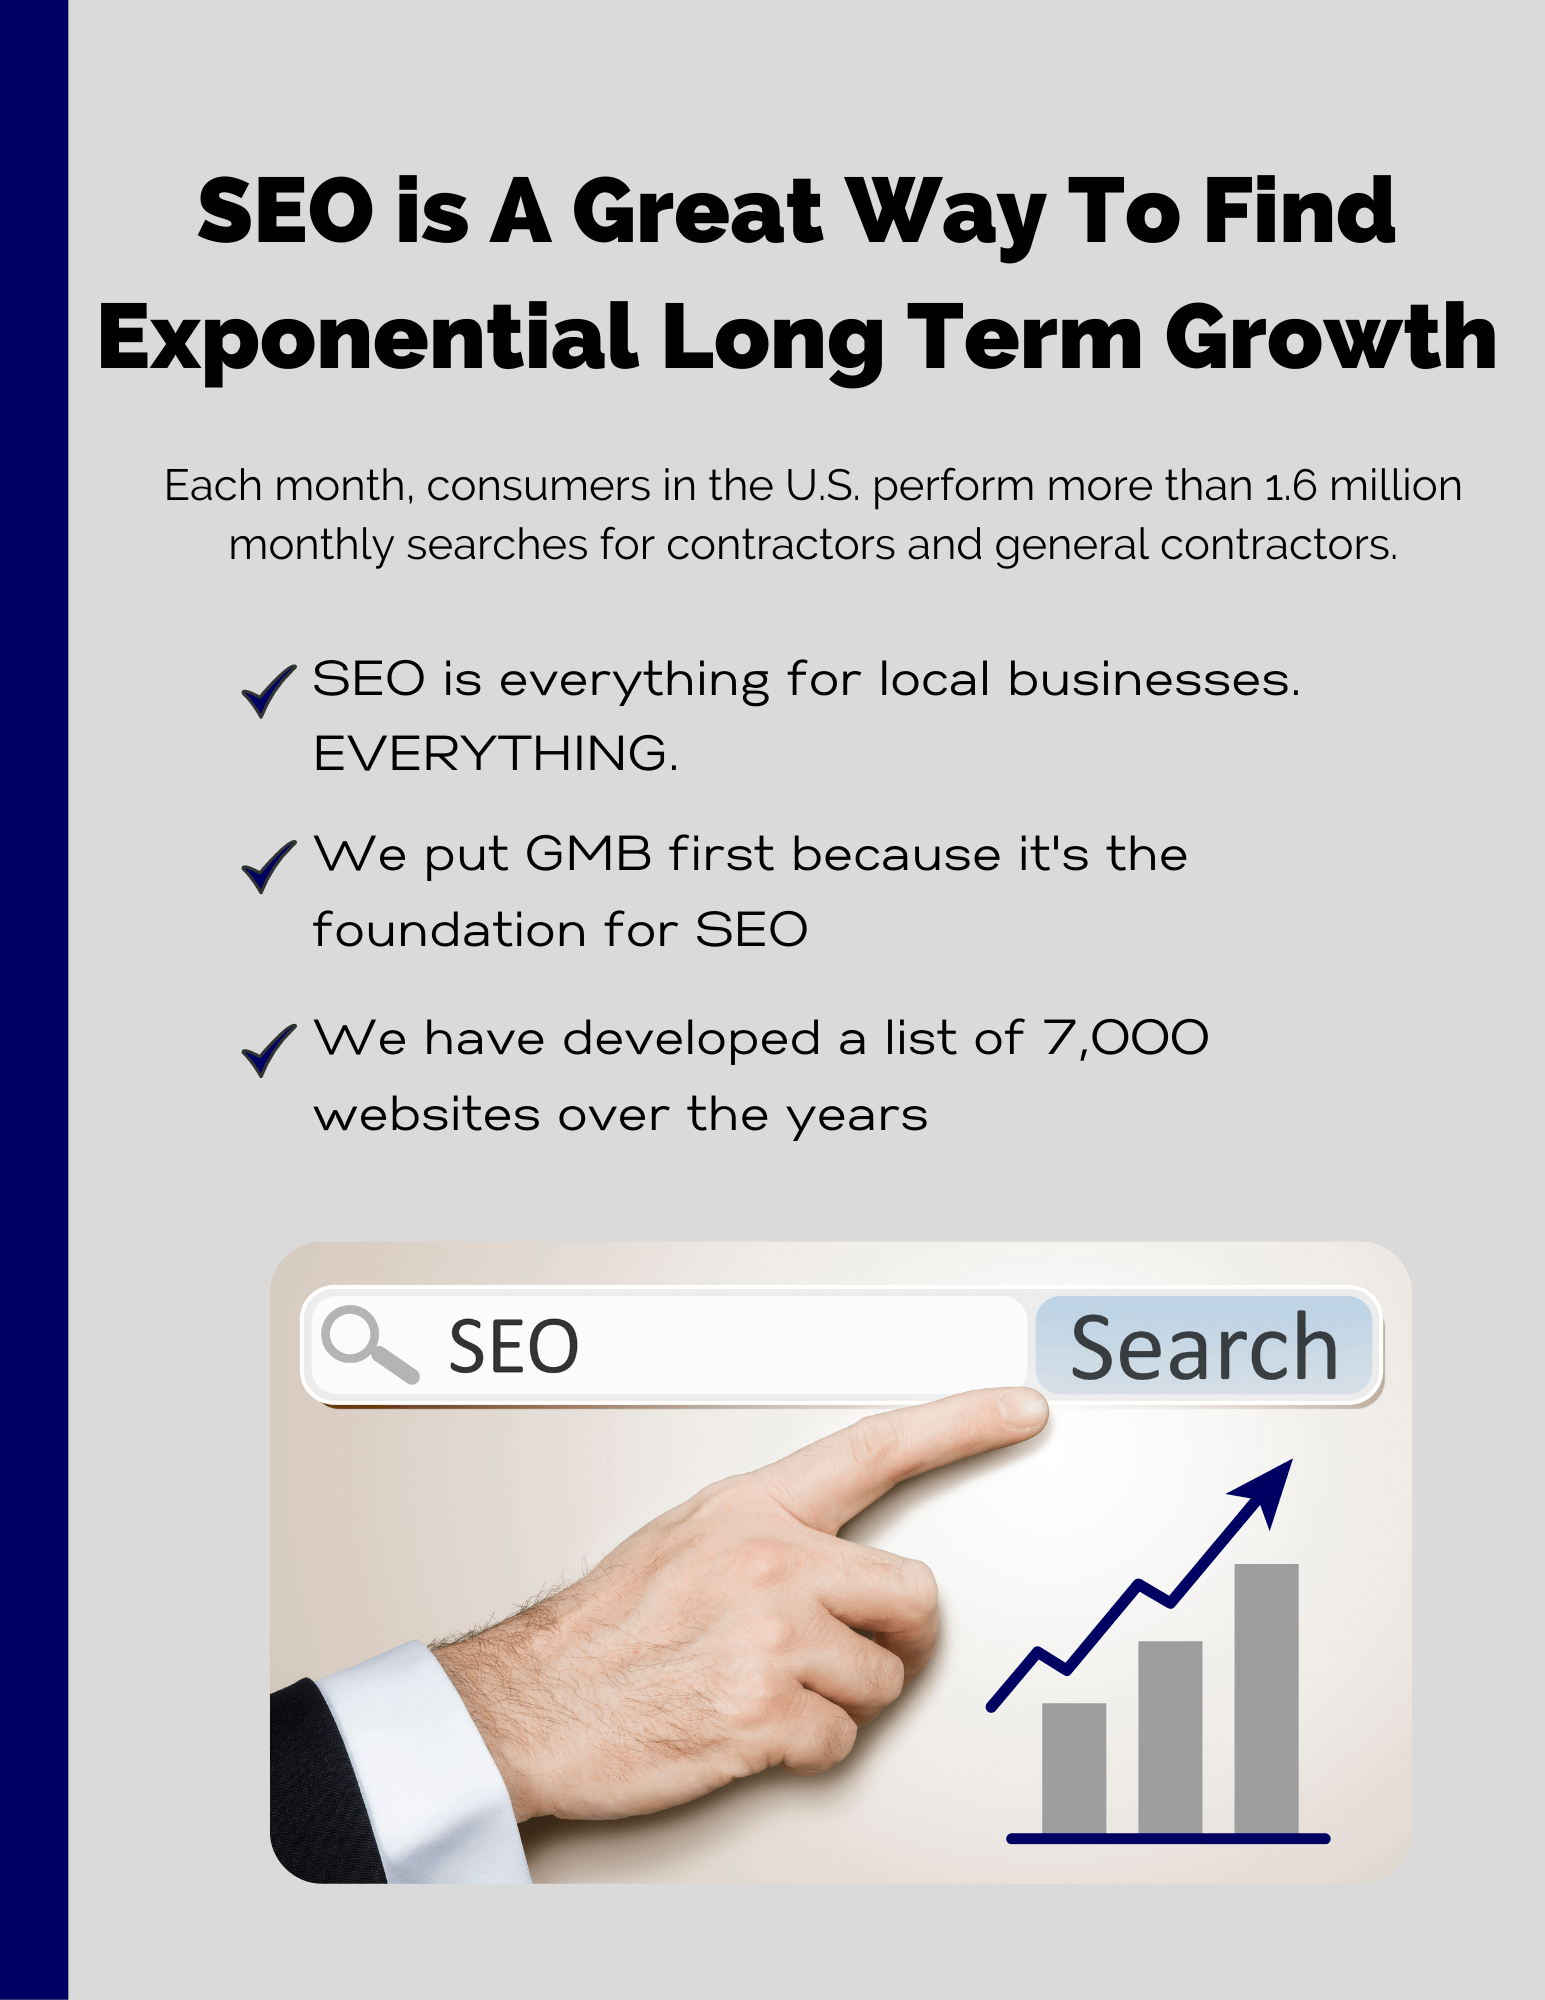 SEO is A Great Way To Find Exponential Long Term Growth